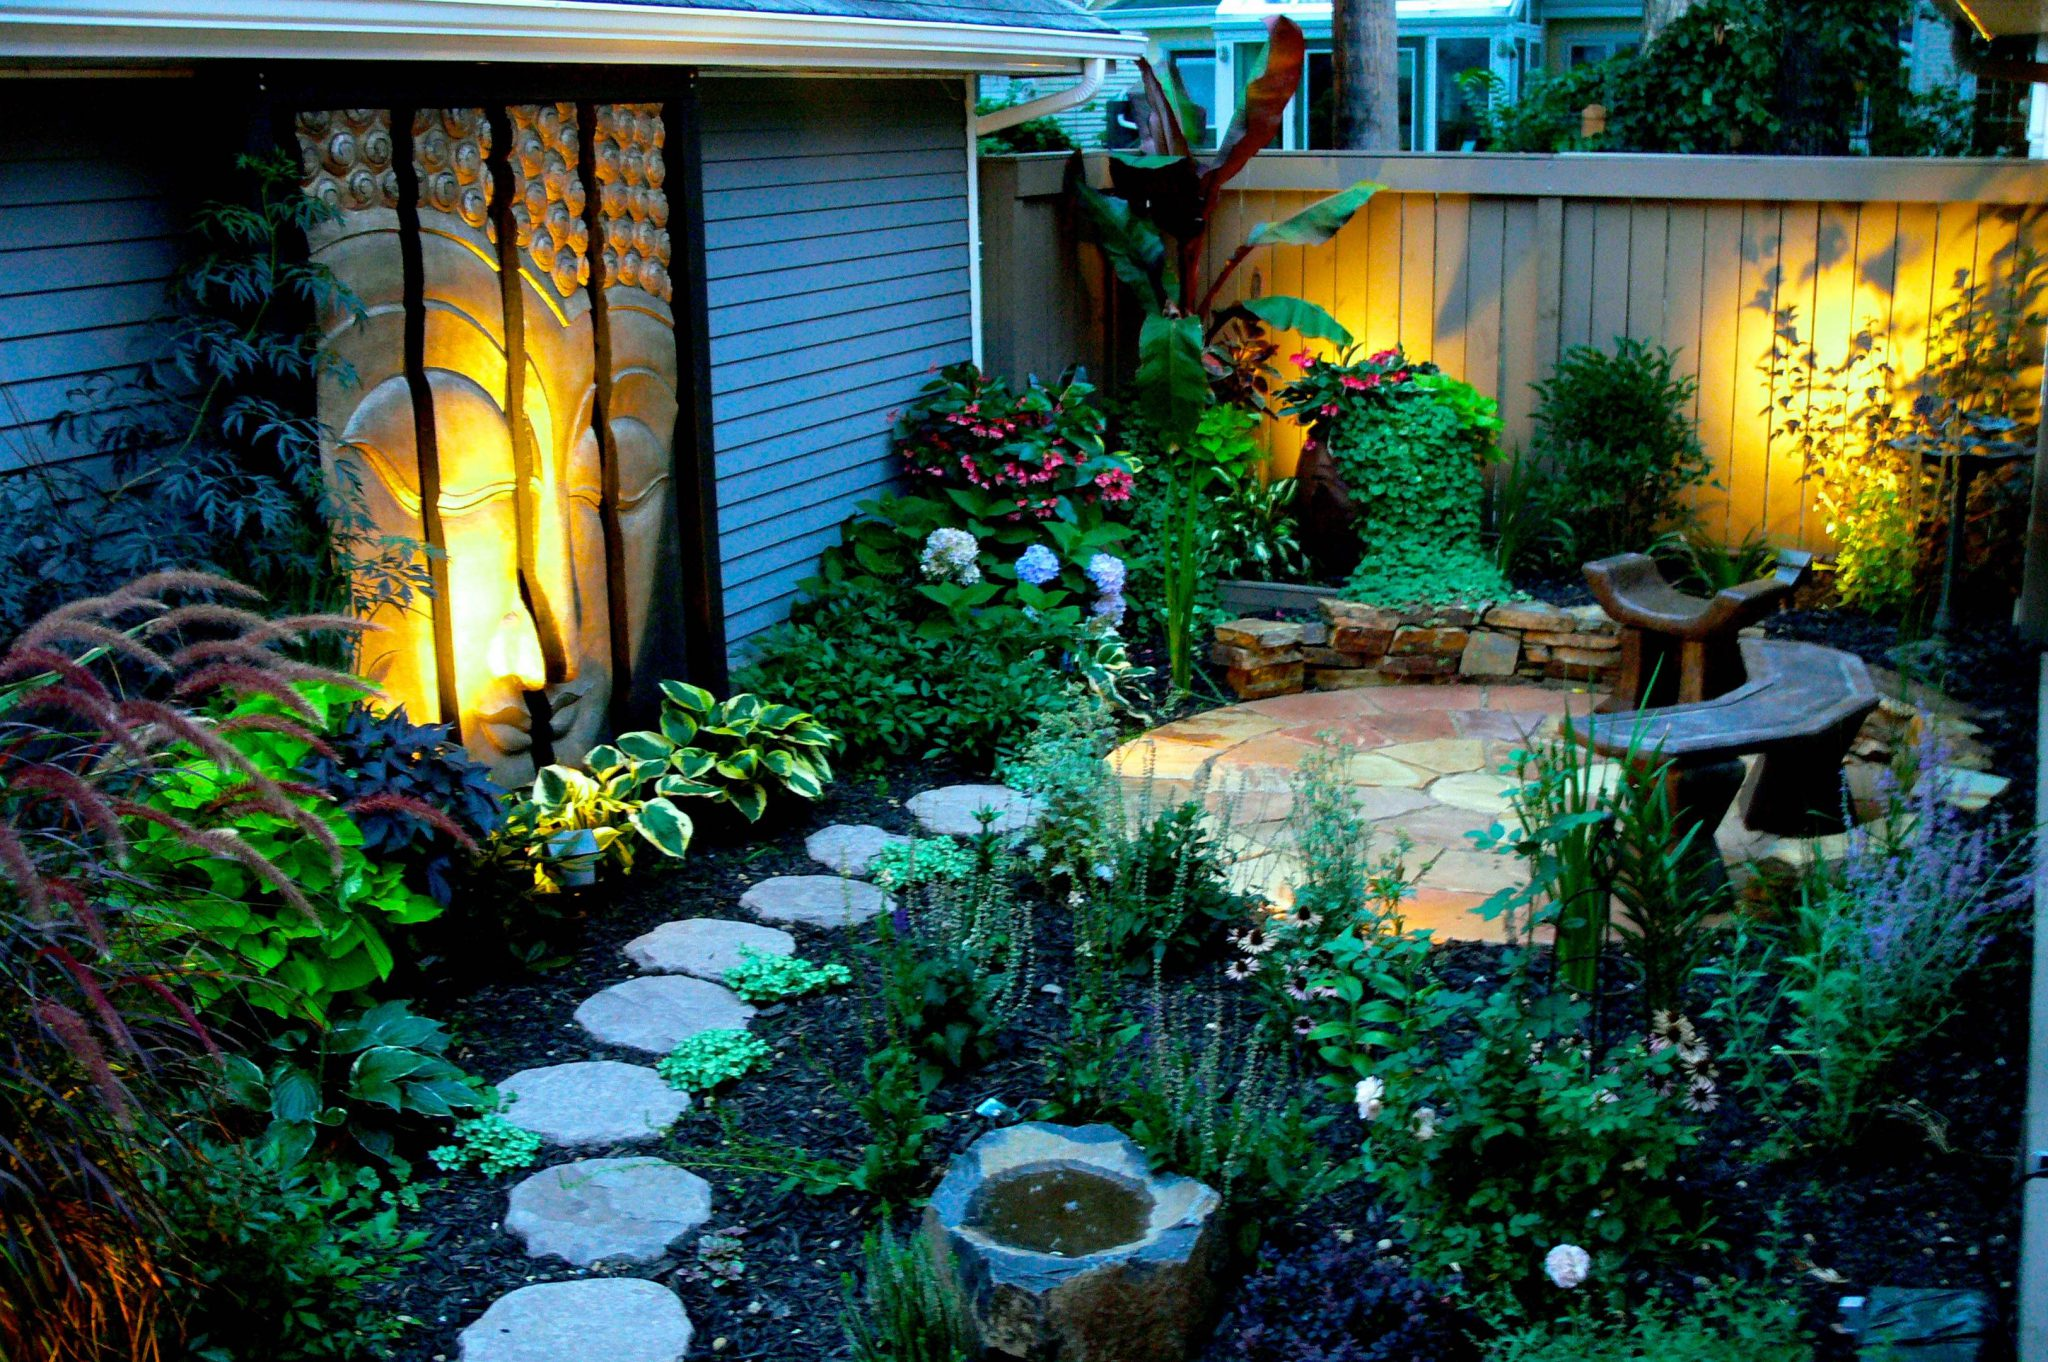 enhancing any outdoor space with lighting